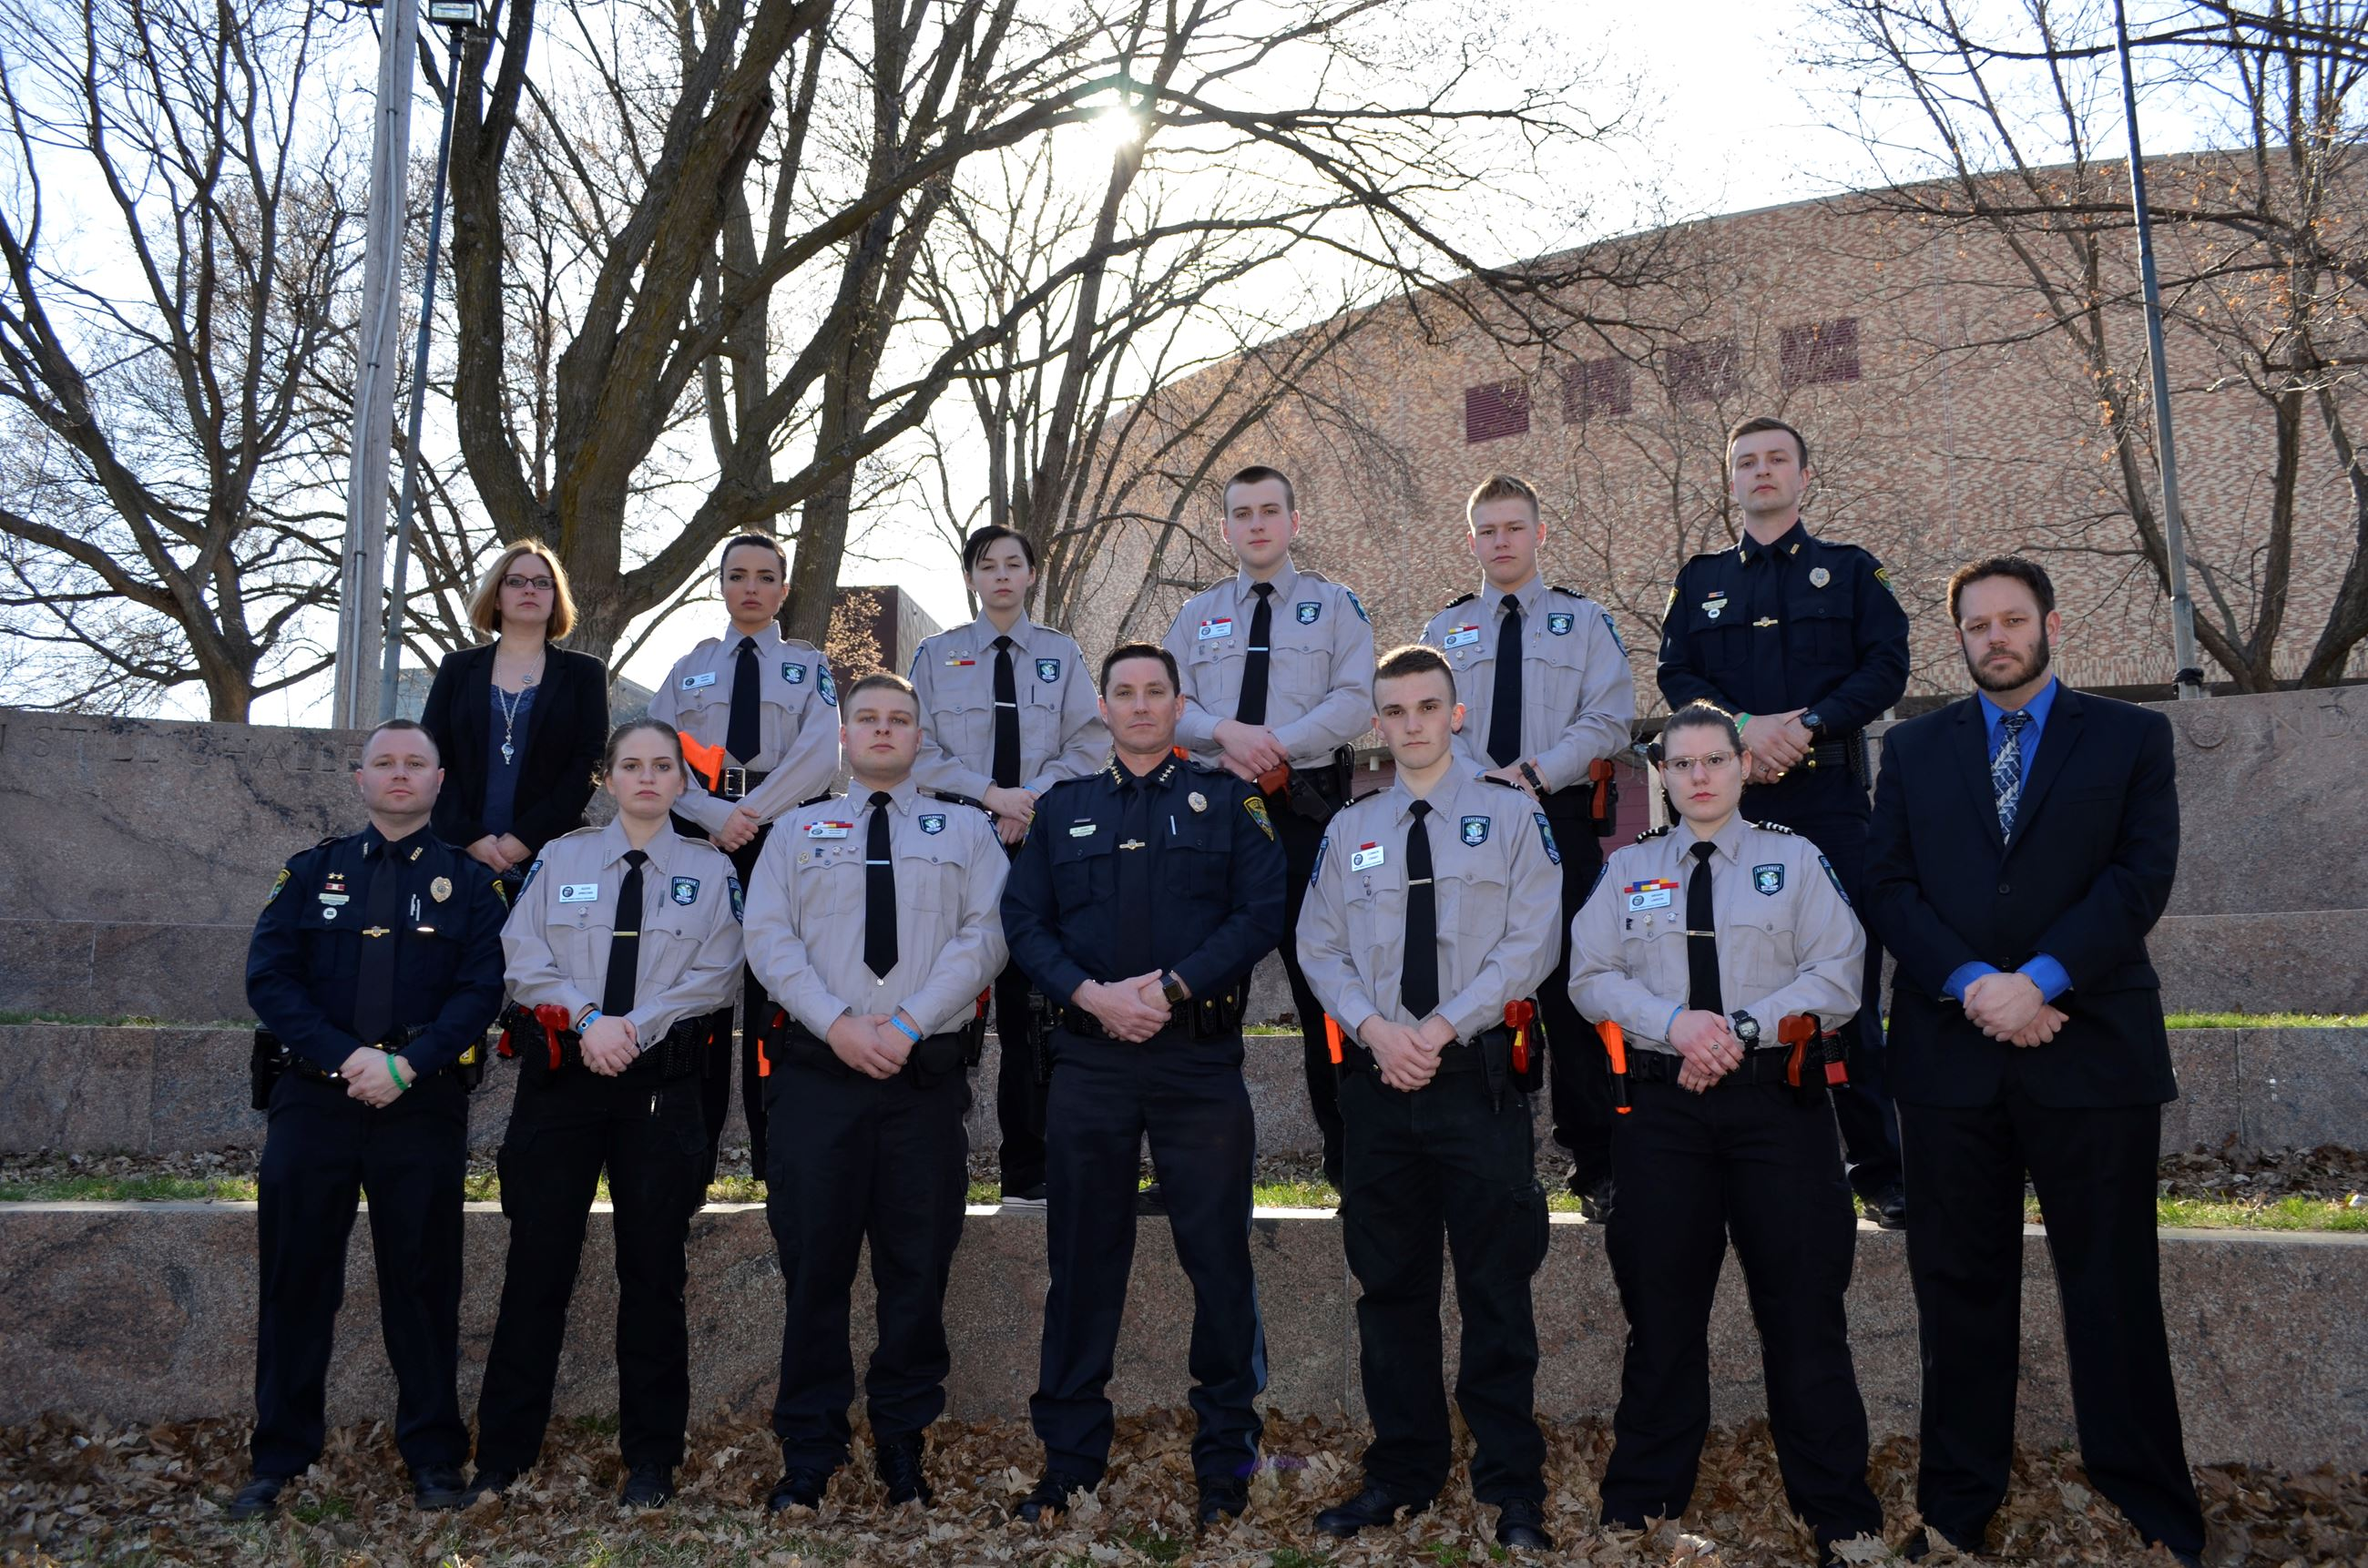 2018 West Fargo Police Explorers Crew and Police Chief